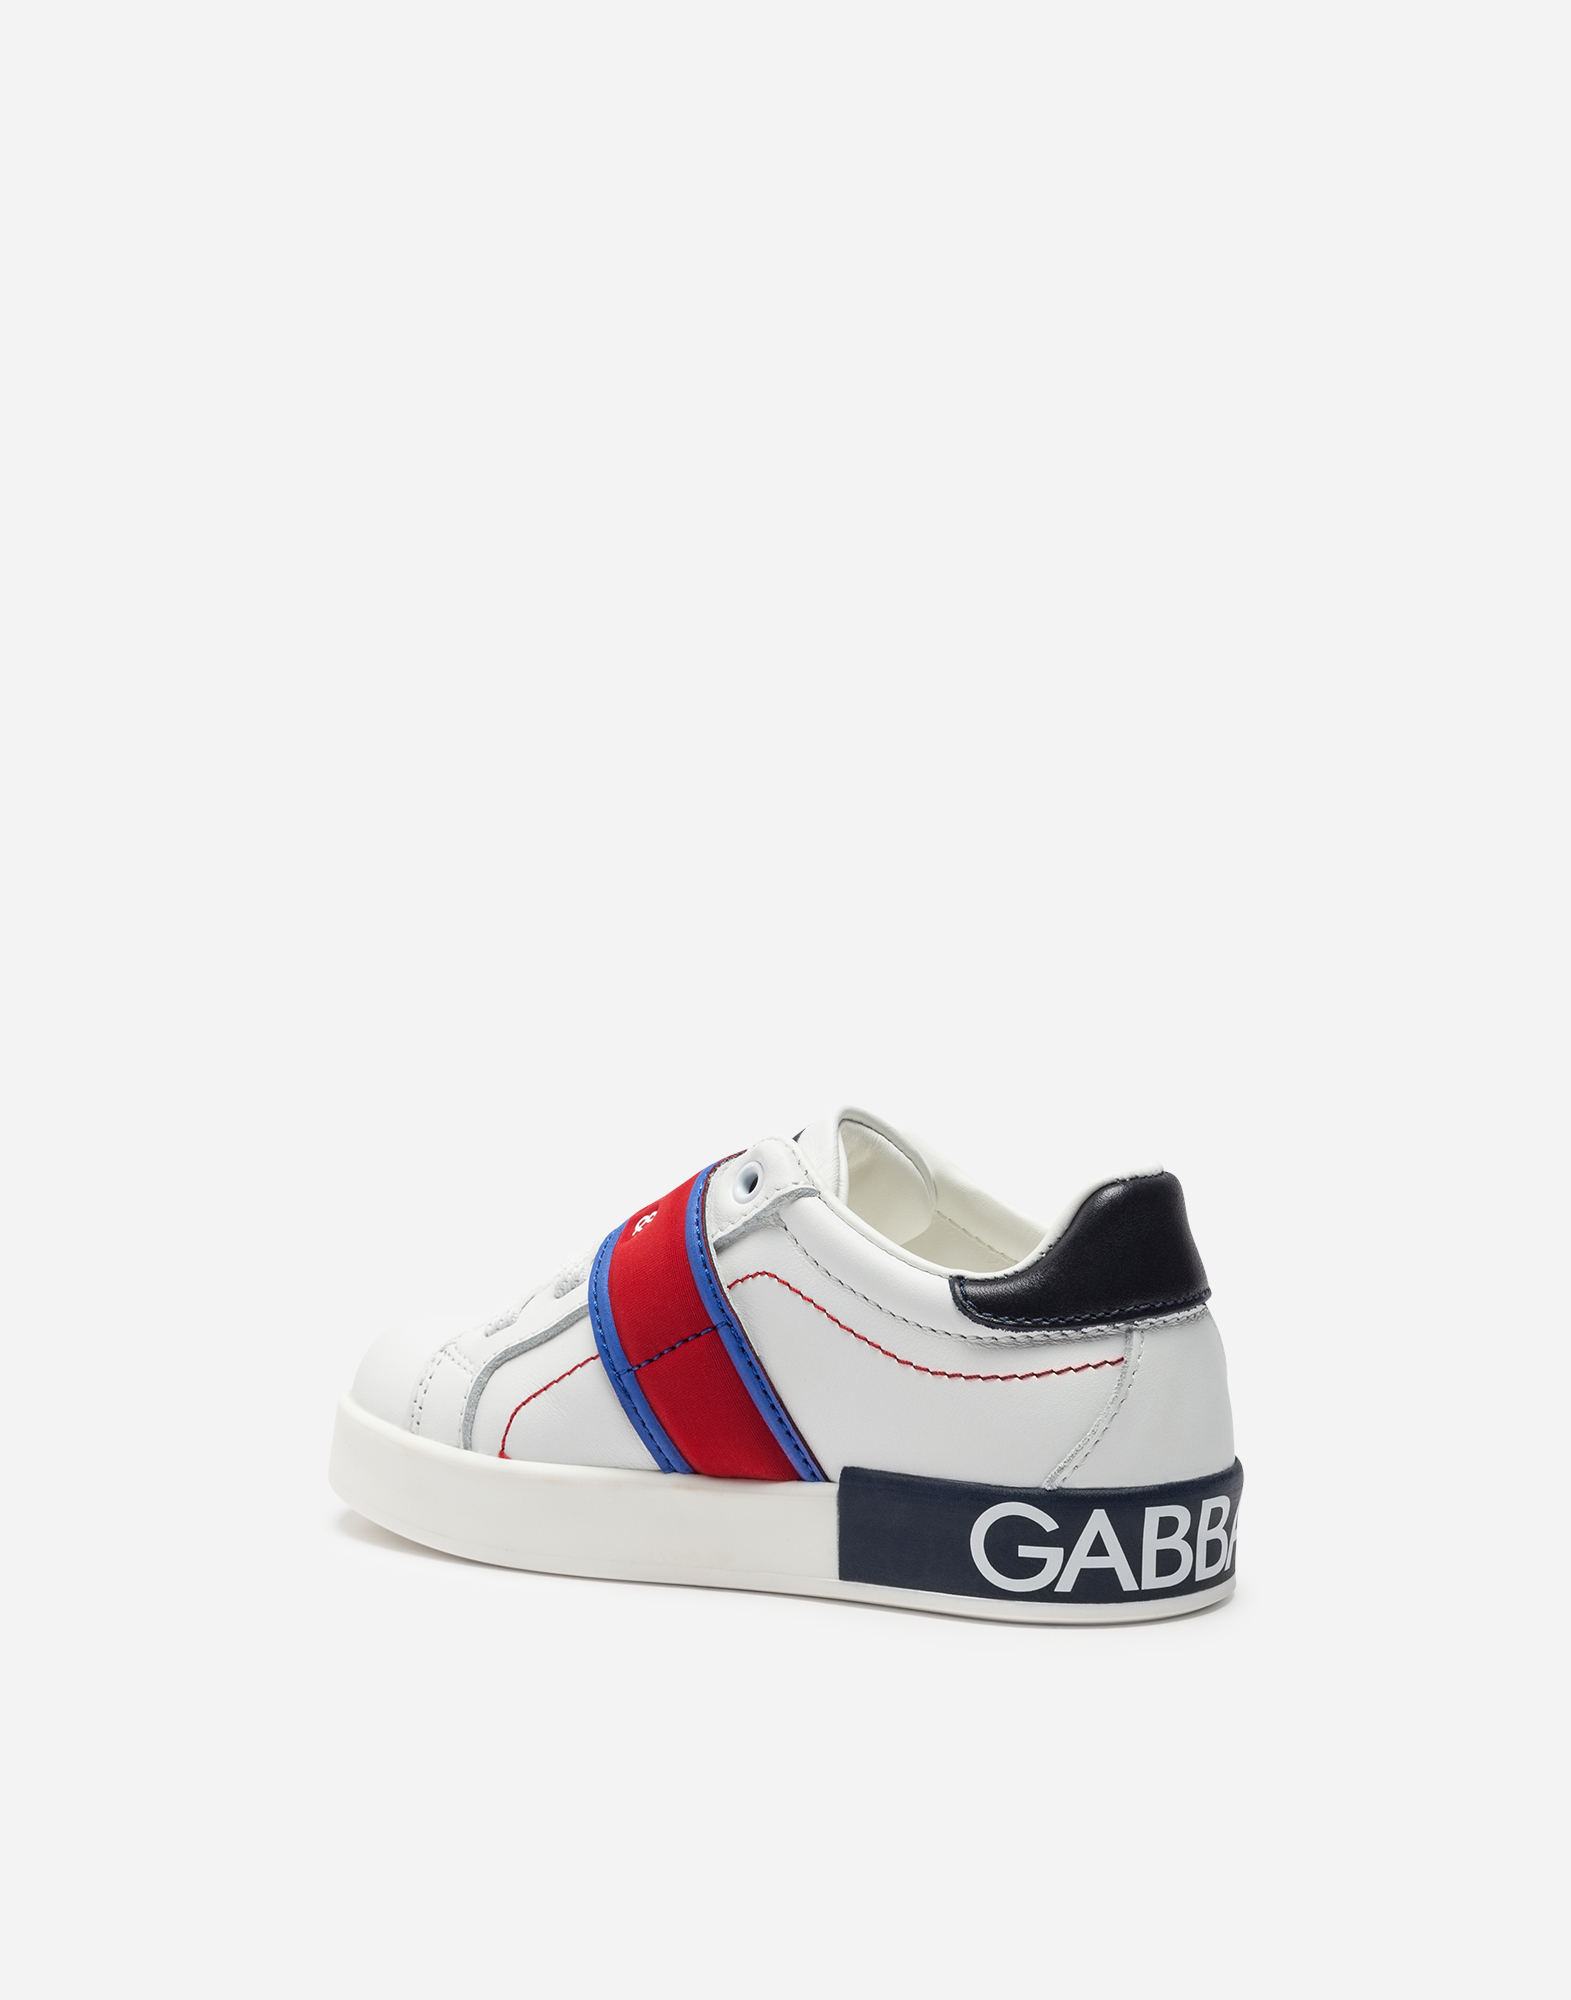 Dolce & Gabbana NAPPA LEATHER SNEAKERS